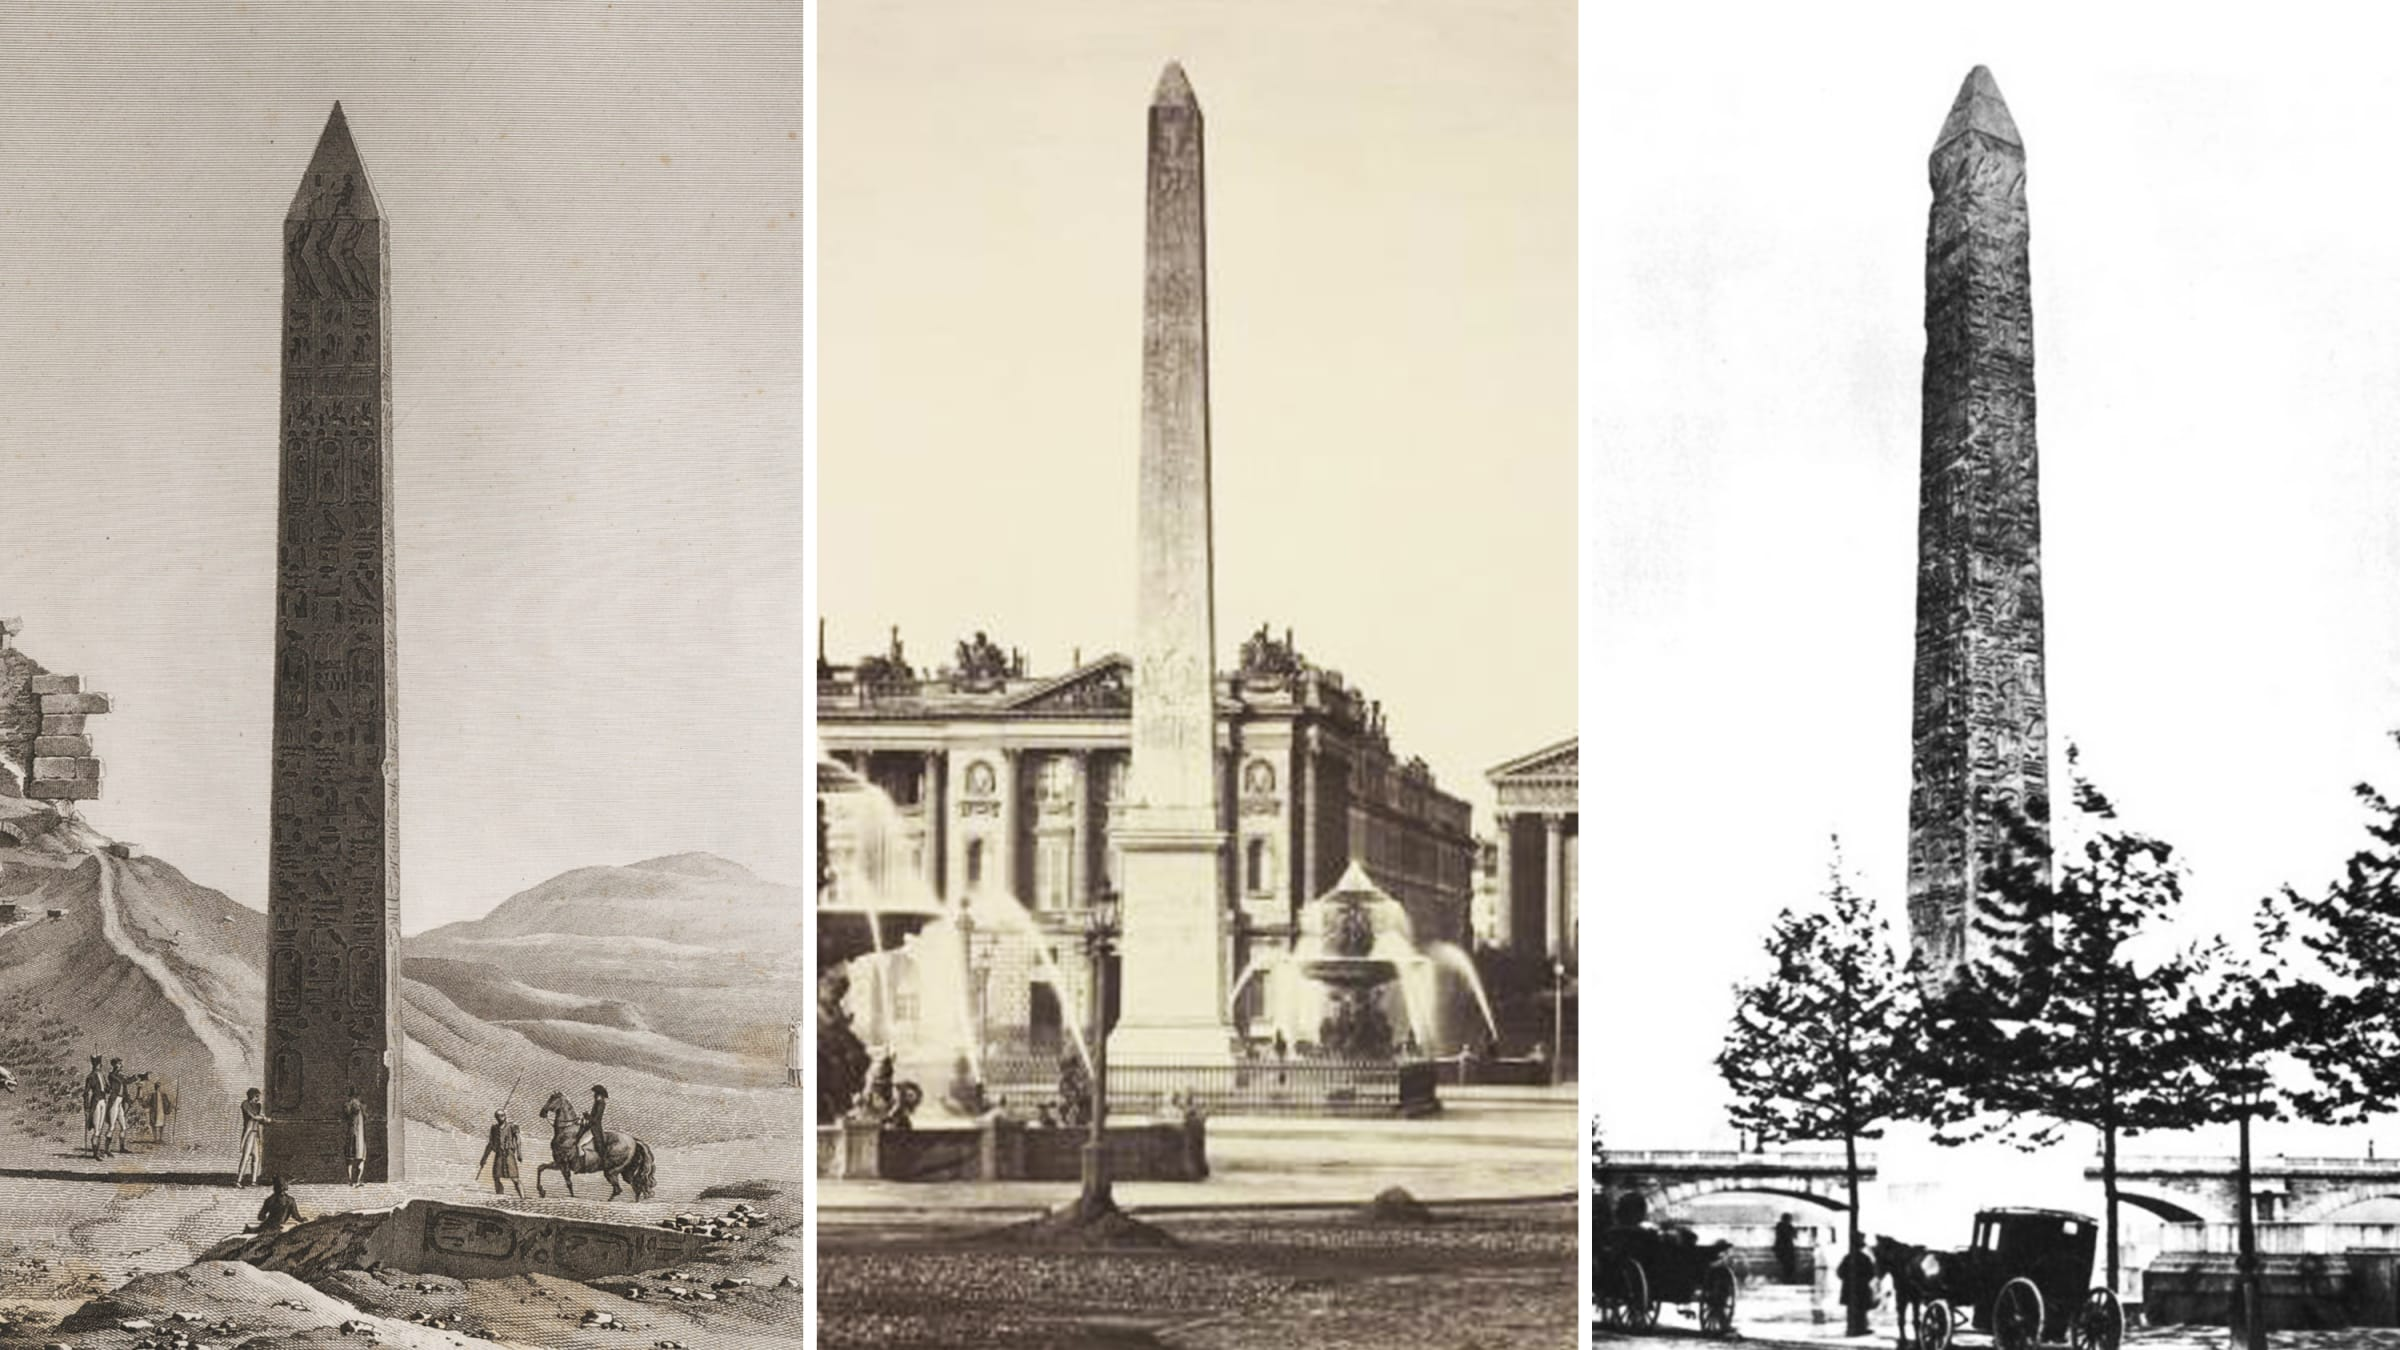 Cleopatra, Napoleon, Queen Victoria and a Vanderbilt: How Three Ancient Egyptian Obelisks Ended Up Halfway Across the World in New York City, Paris, and London